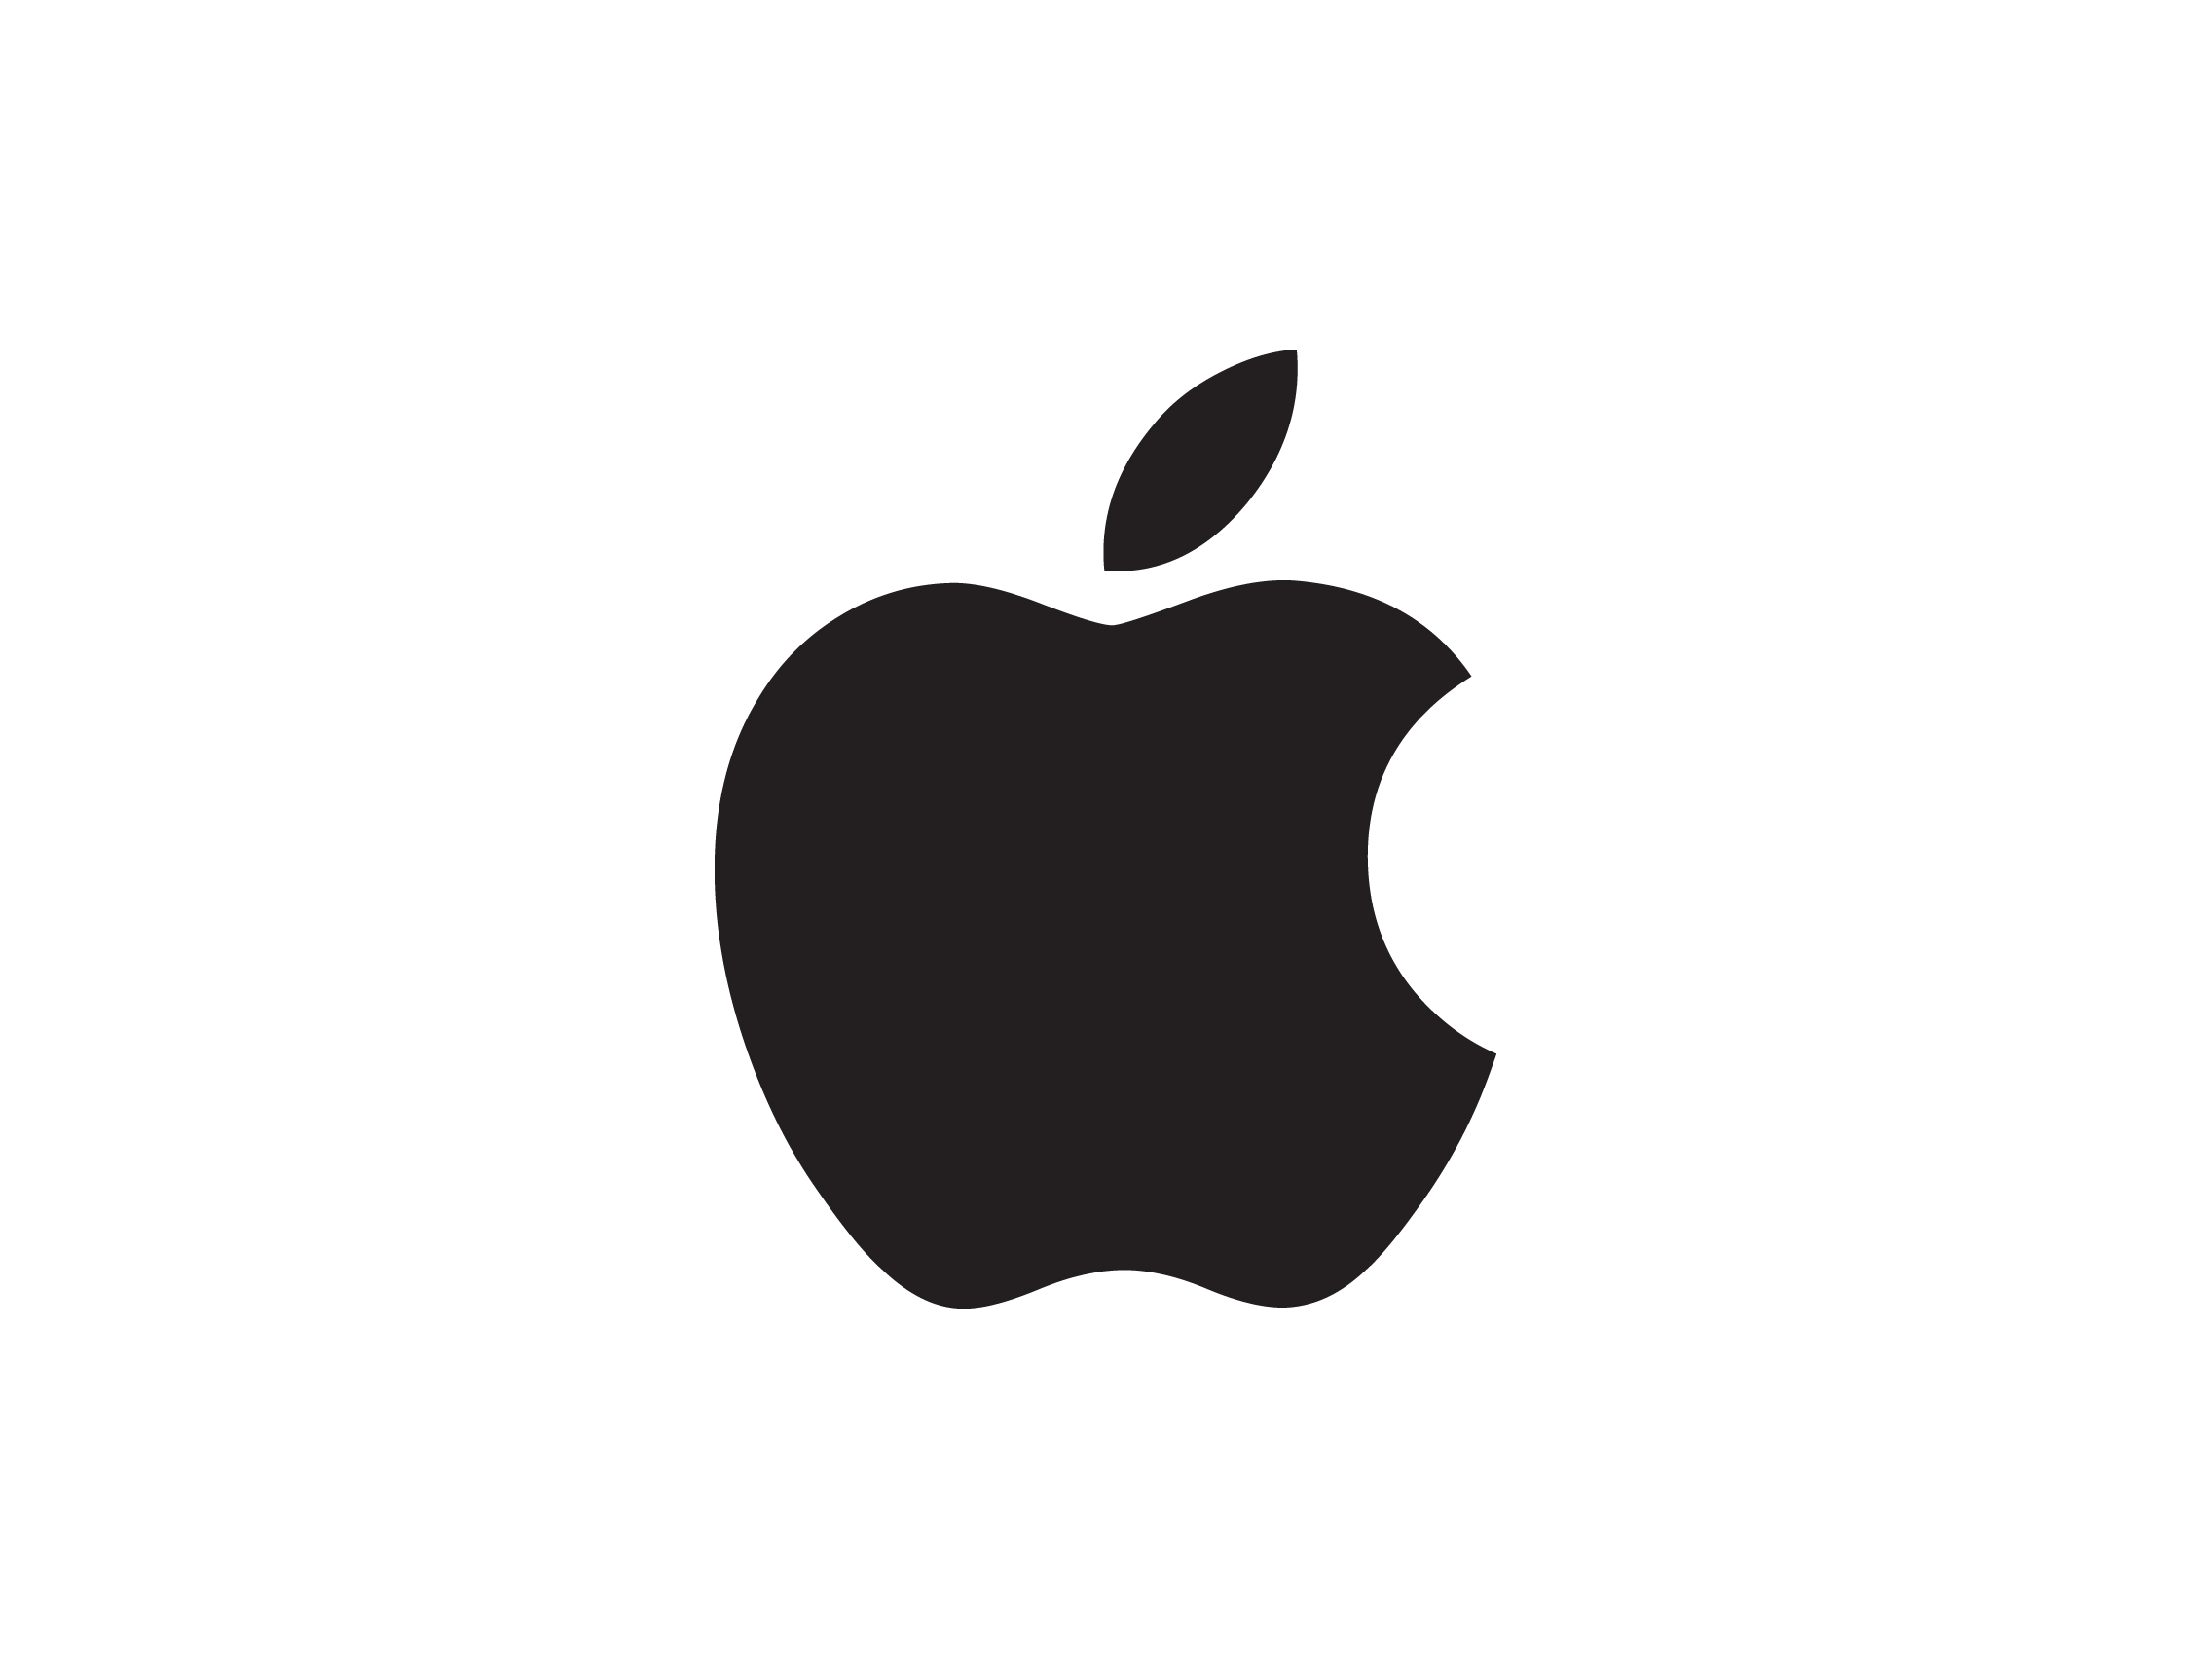 Apple logo png white. Images free download